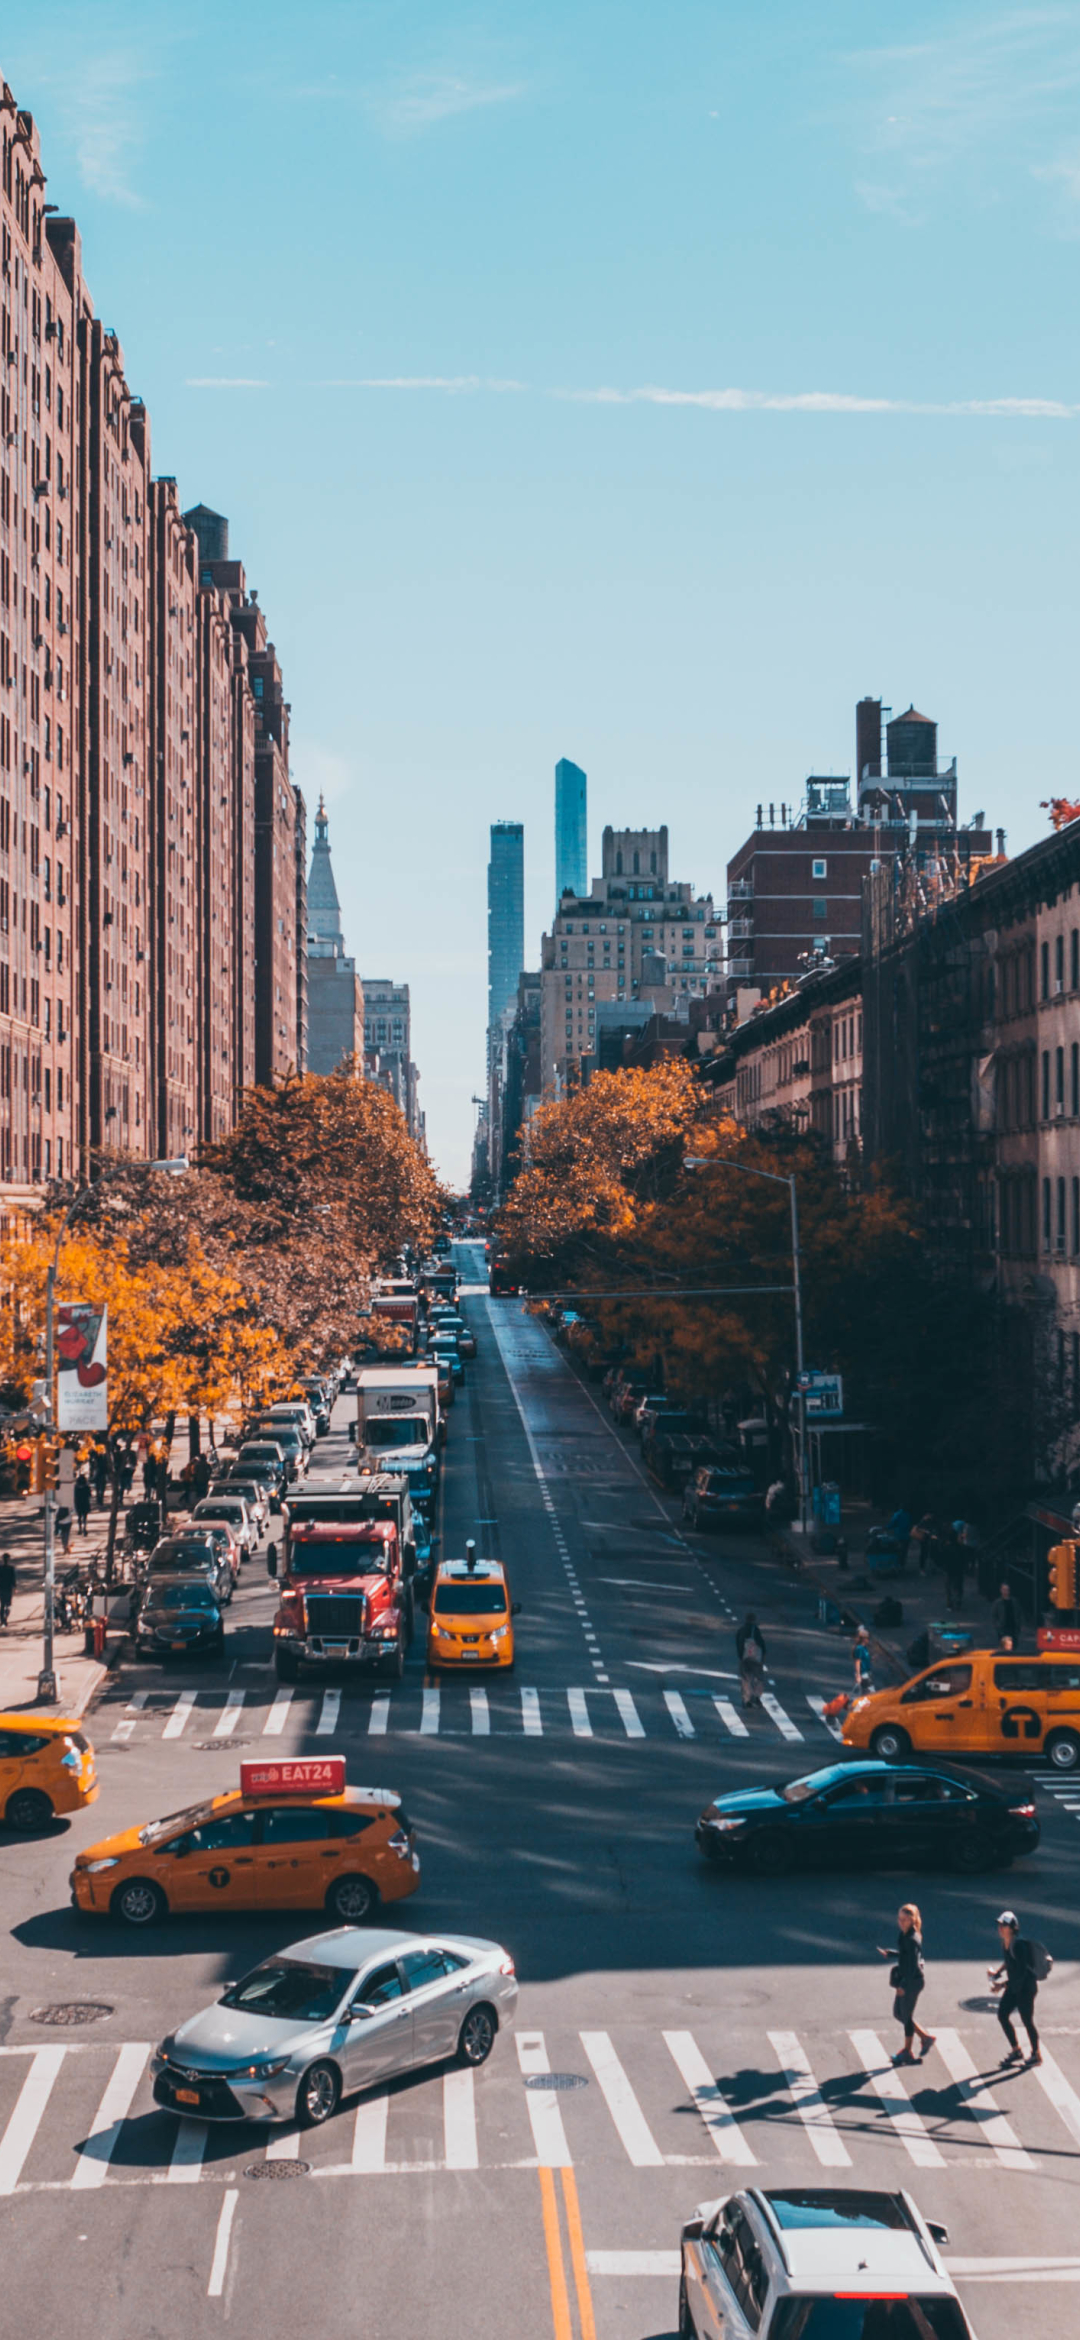 1080x2340 New York City Street Photography 1080x2340 Resolution Wallpaper Hd City 4k Wallpapers Images Photos And Background